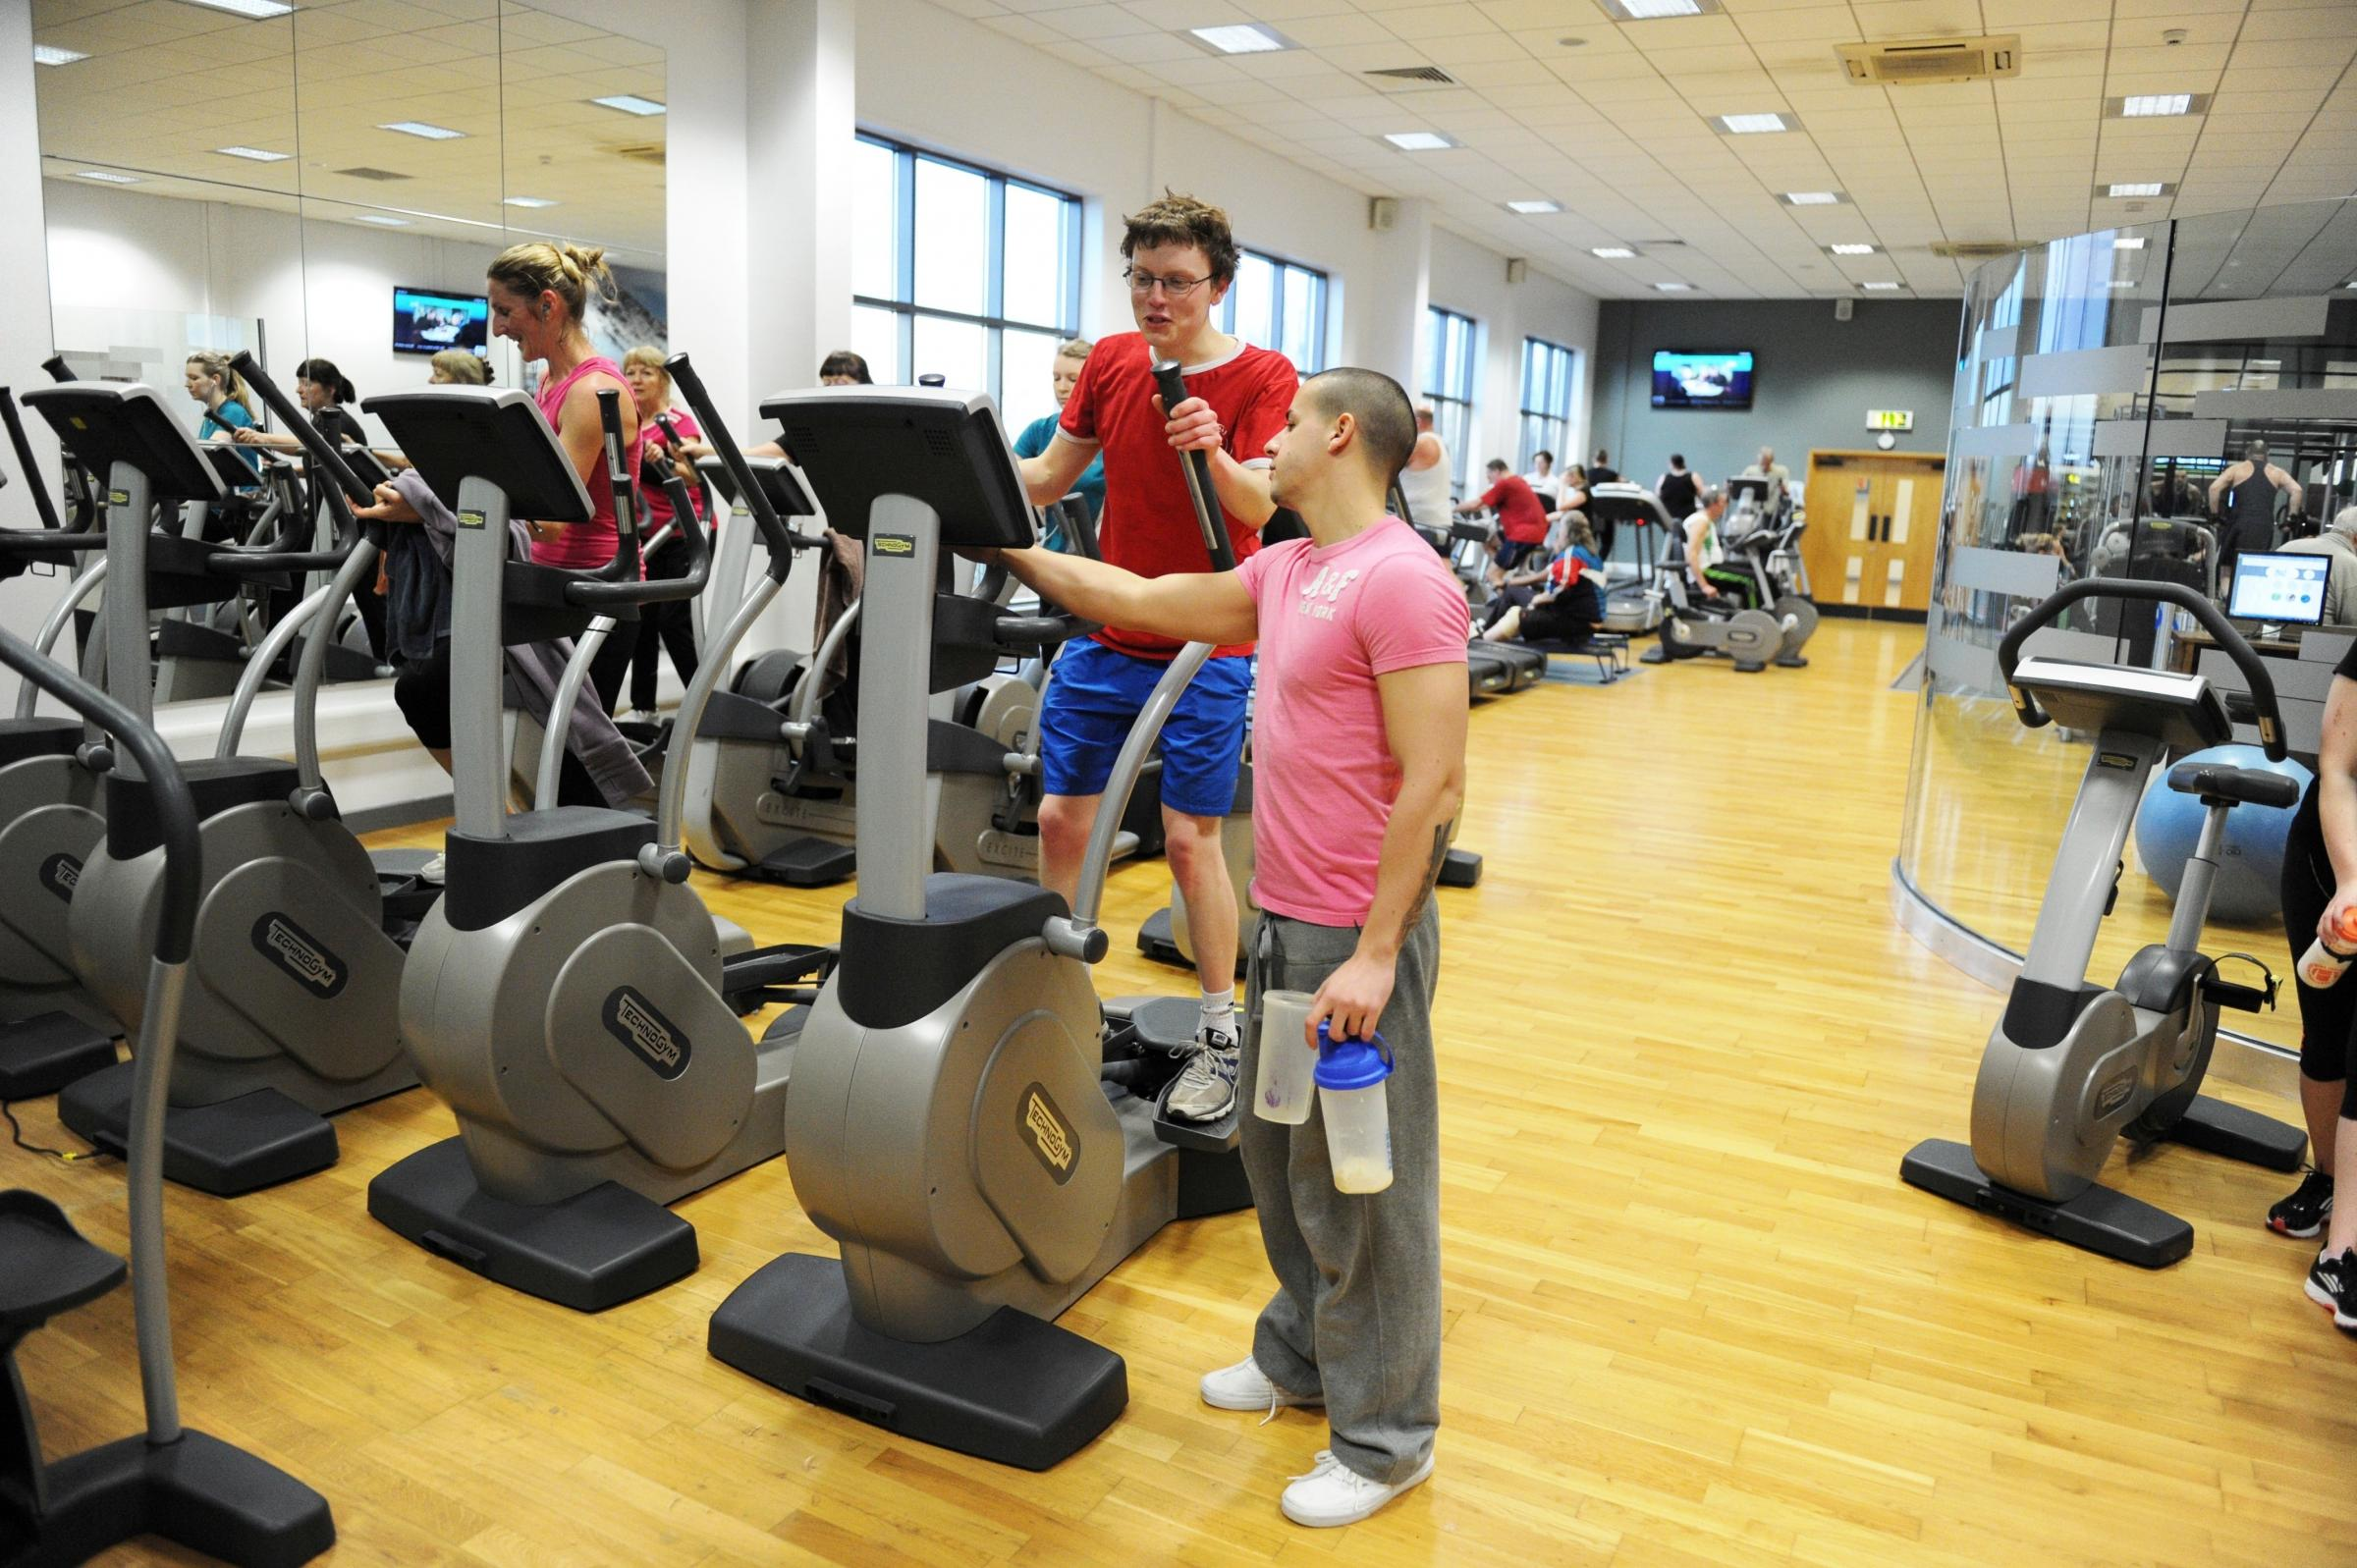 Work up a sweat at gents only fitness classes